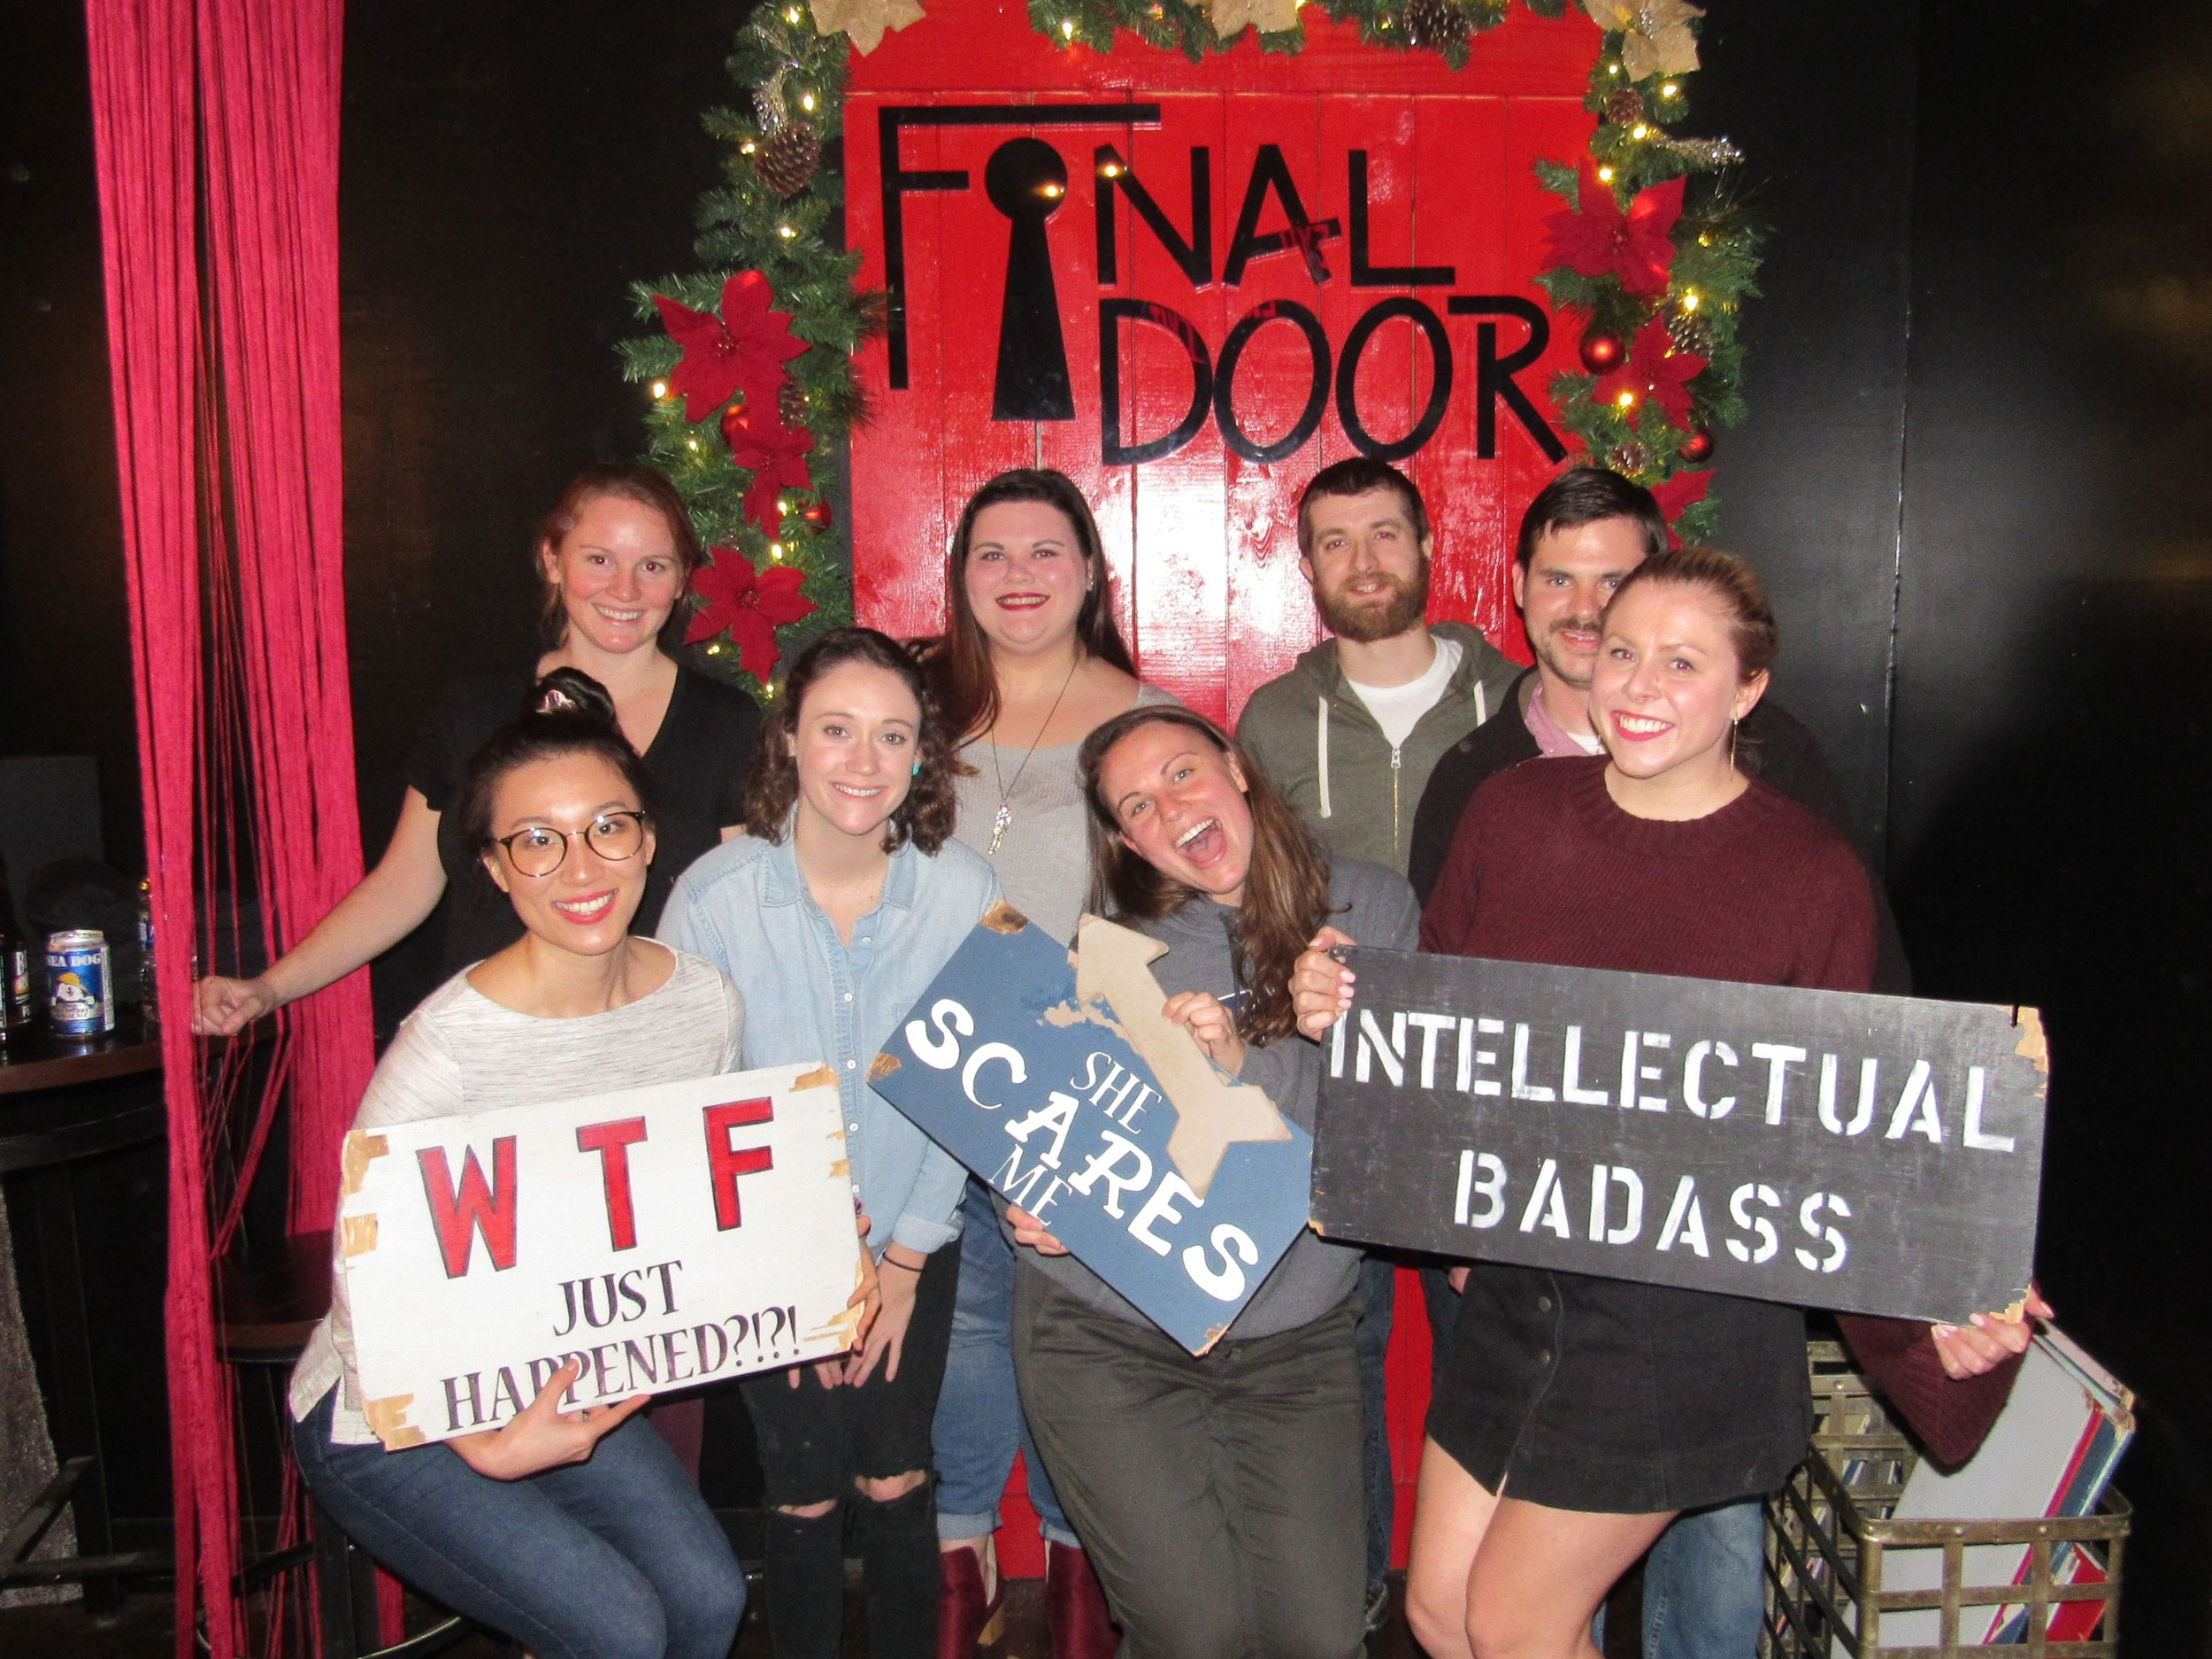 the-final-door-escape-room-columbia-sc-team-photo-1-5-2019-15.JPG